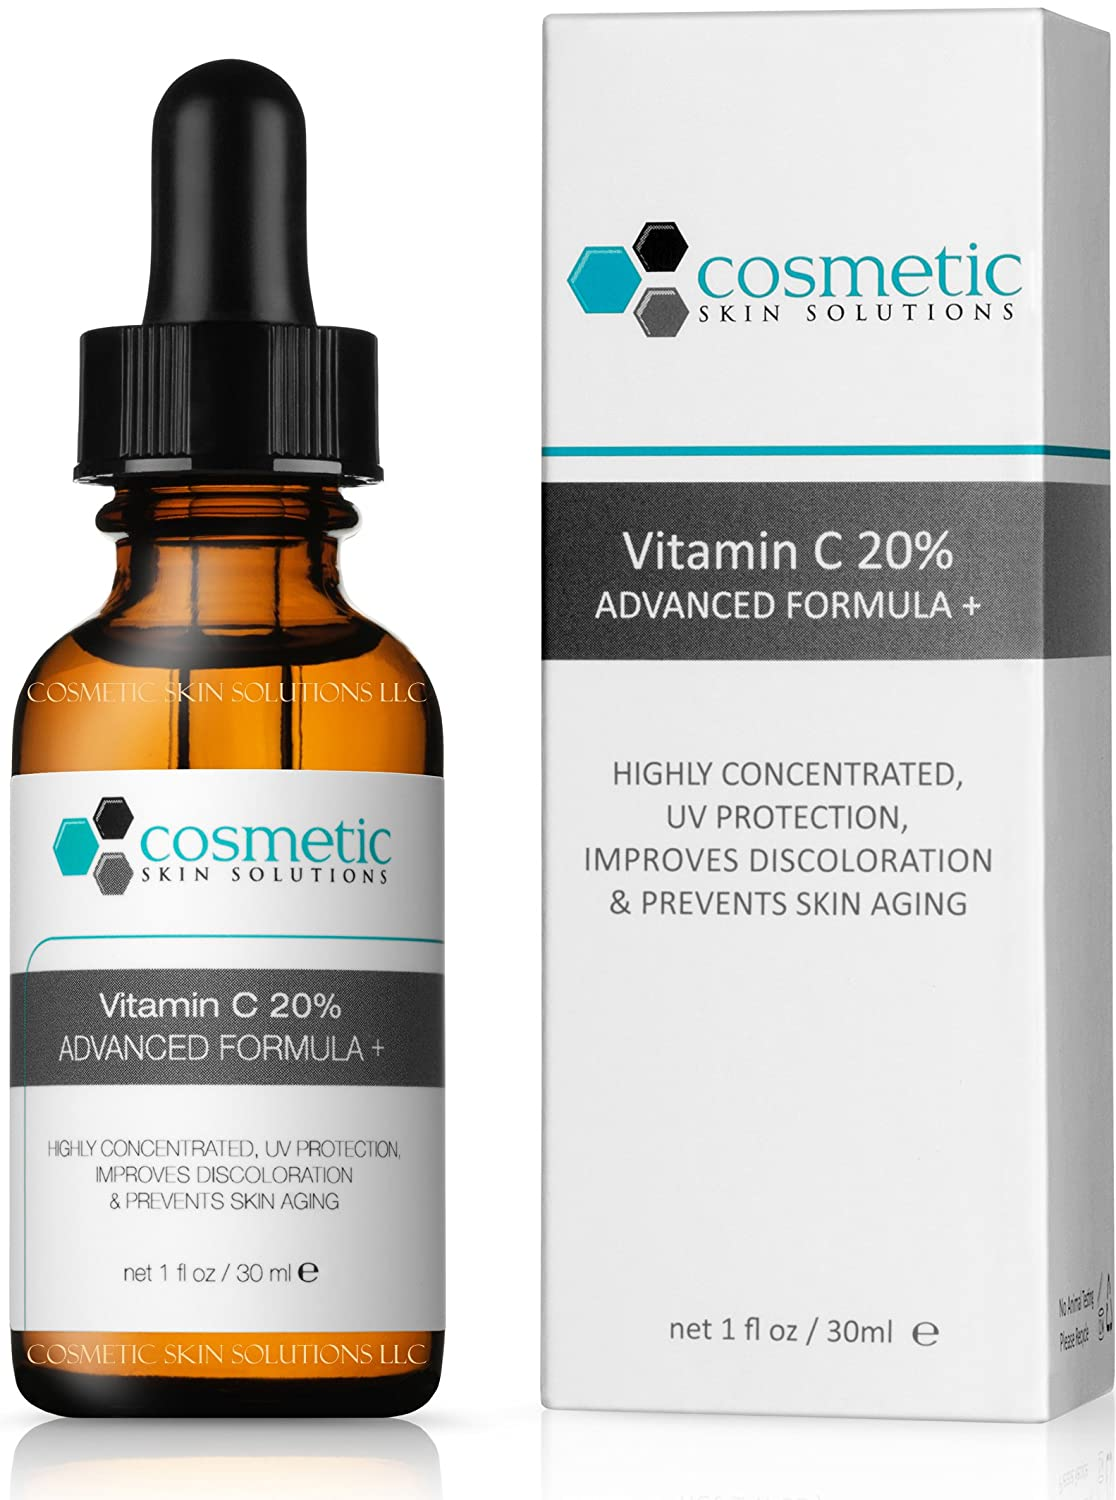 Vitamin C 20-Percent Serum Advanced Formula 1 oz /30 ml-20-Percent Vitamin C, 0.5-Percent Ferulic acid, and hyaluronic acid. Highly concentrated, UV protection, prevents skin aging. Skincuticals